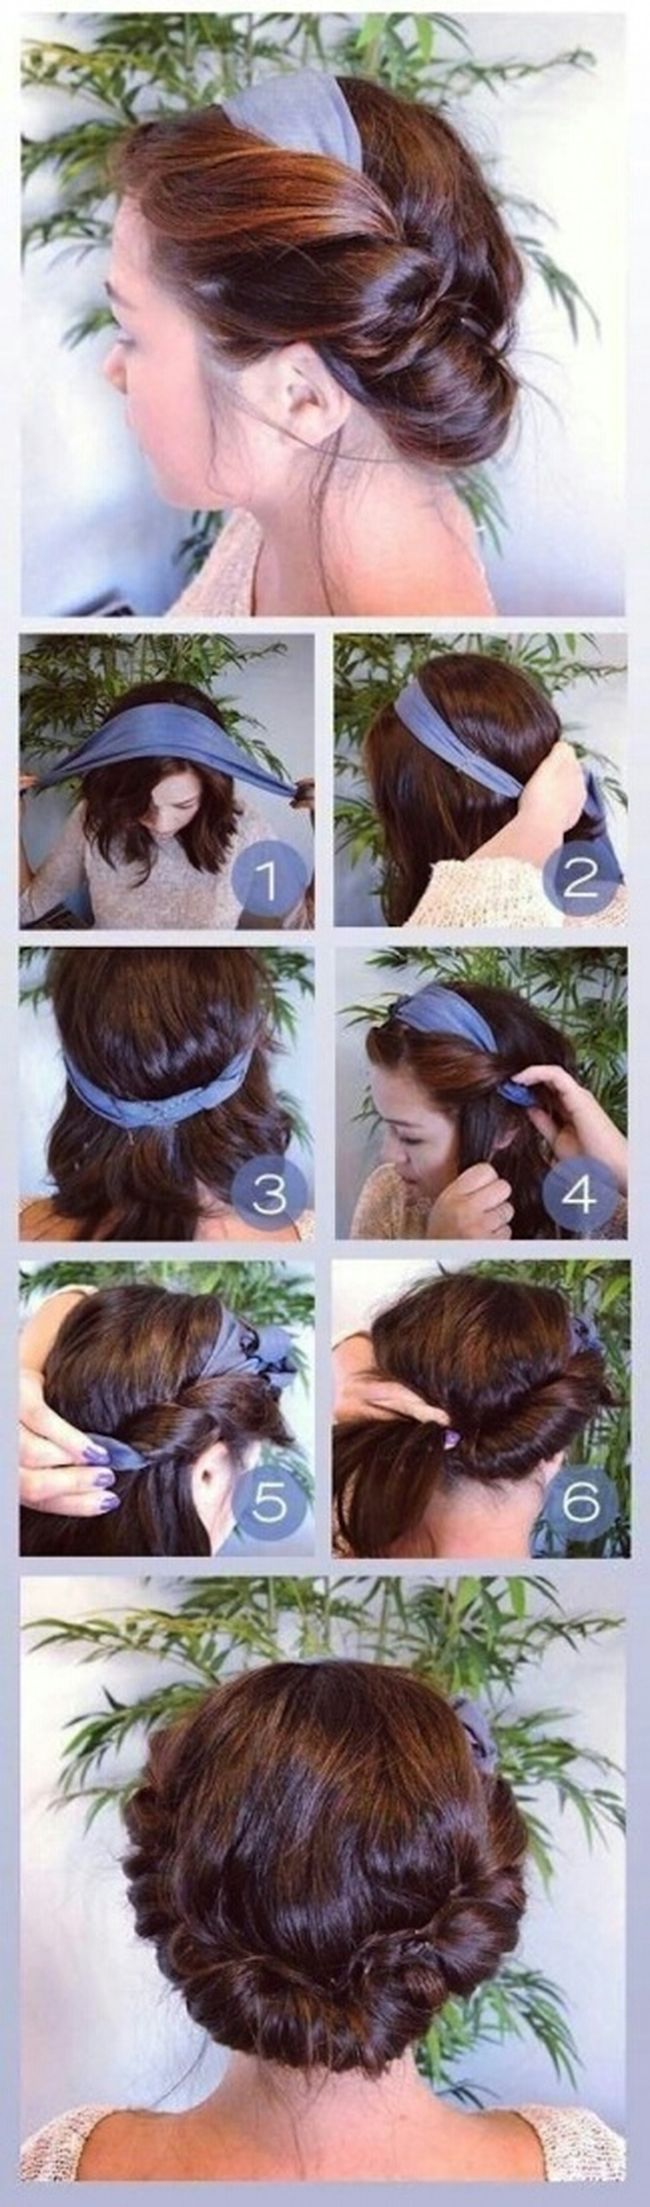 Have a turban? Then try this ;) DIY How To Make Check This Out Beauty Hairstyle Hair Tips Handmade Jojobeautytips Handmade Jewellery